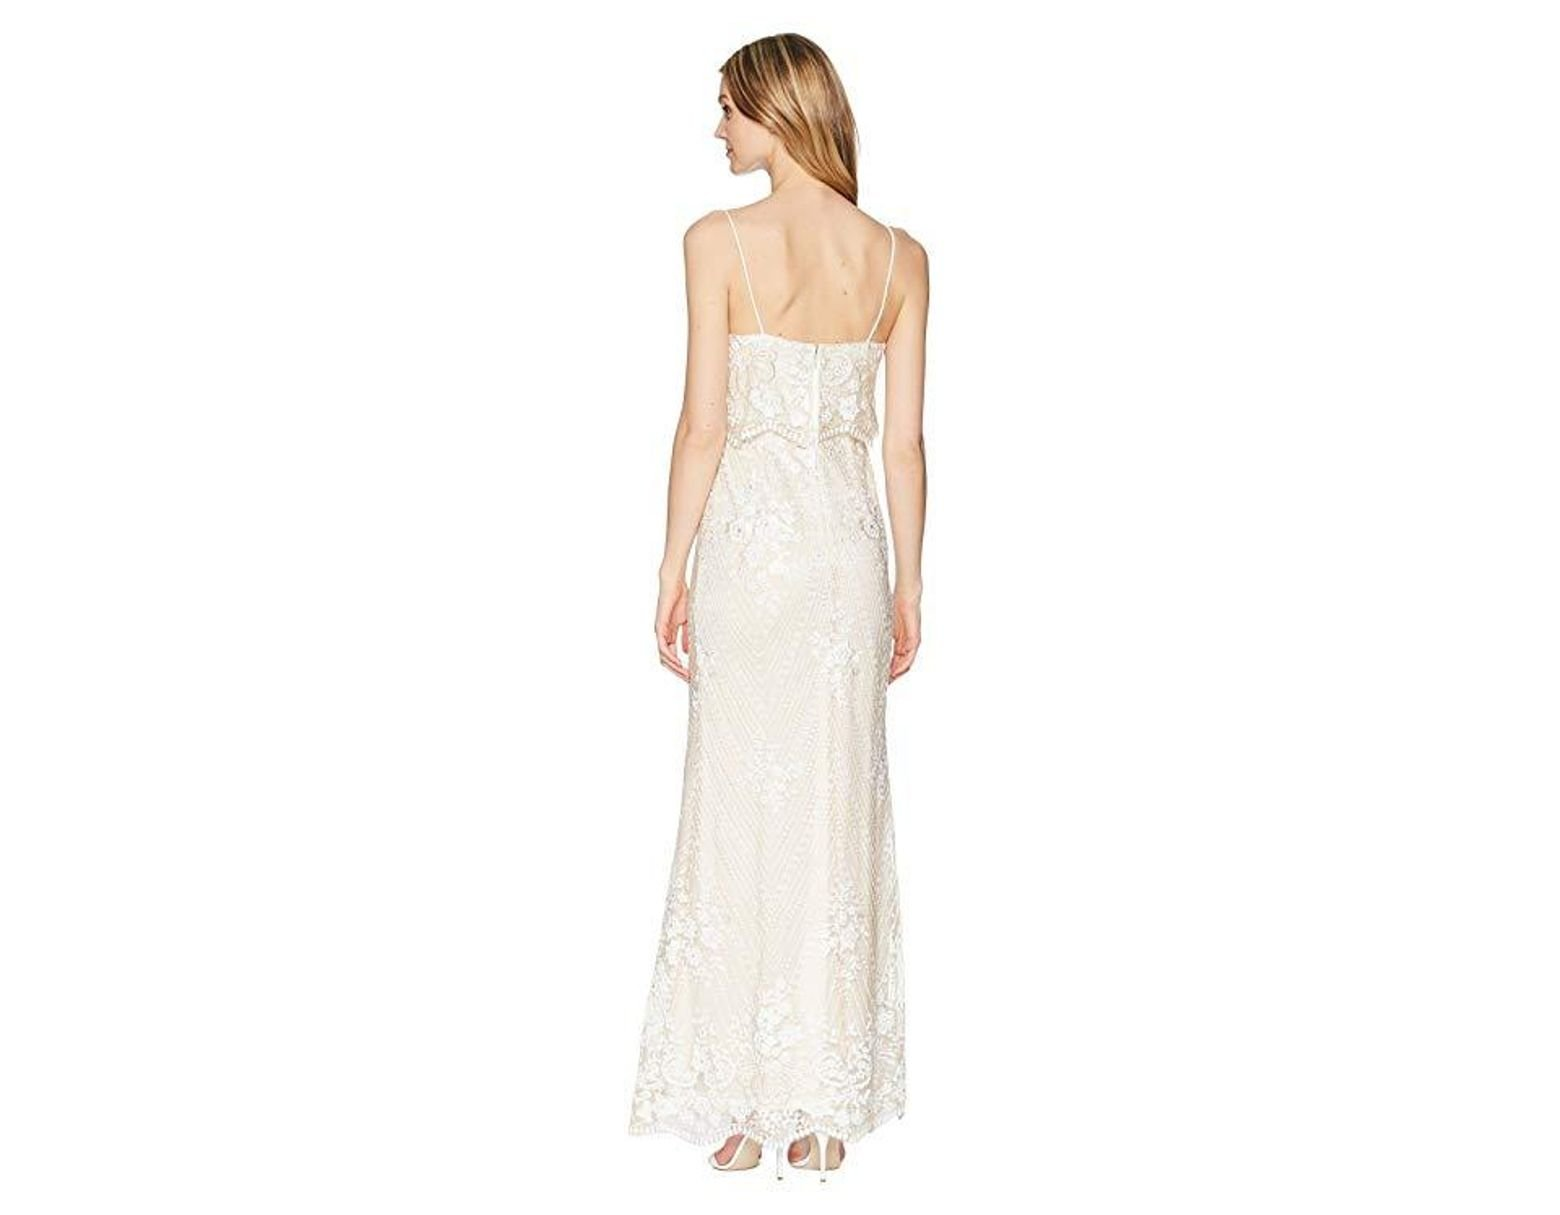 6af65d06 Adrianna Papell Sequin Popover Gown (pearl) Dress in White - Save 25% - Lyst